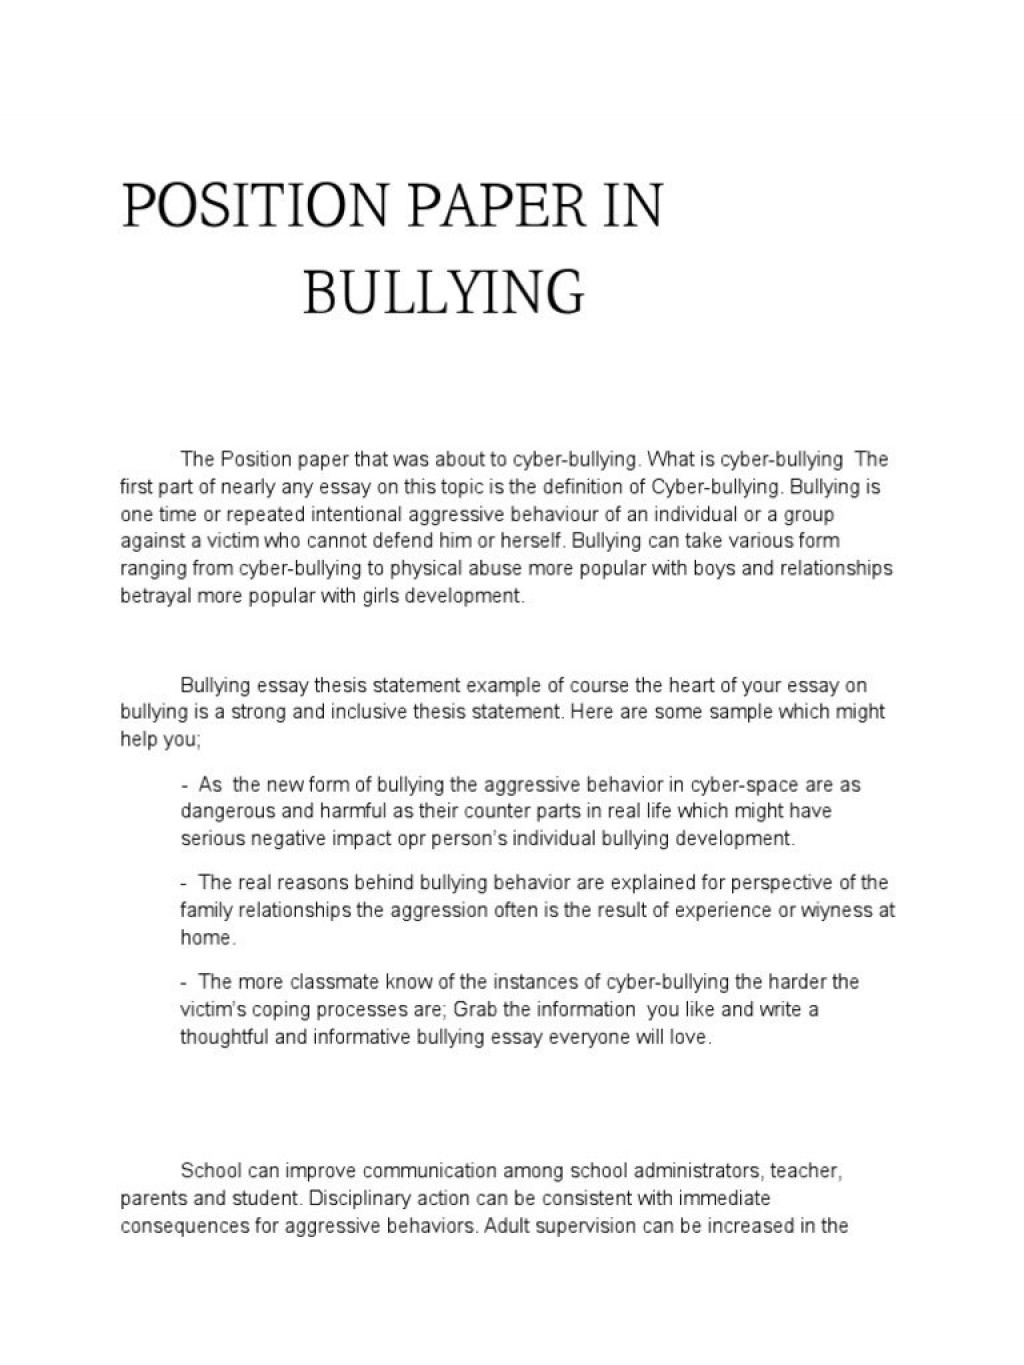 005 Bullying Essay Example Good Conclusion For Academic Writing Service Cause And Effect On In Awful Topics Cyber Titles Persuasive Ideas Large